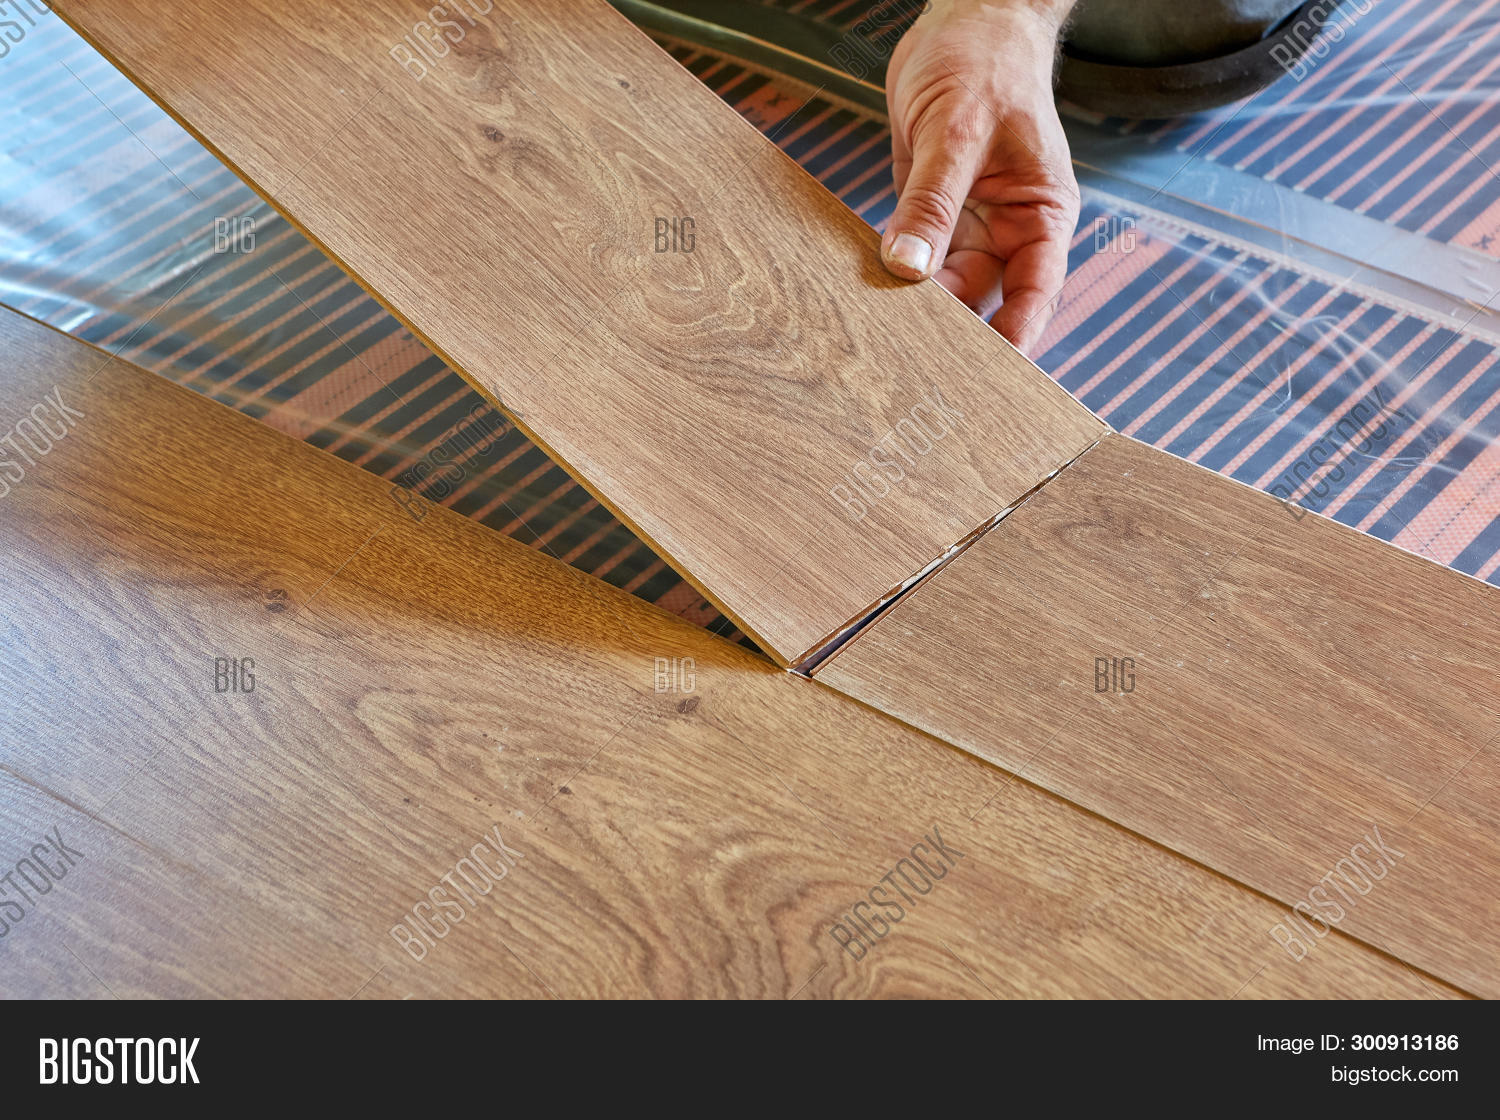 Laminate flooring. Male repairman is laying panel of  laminate floor  on a heat-insulated floor. Ele